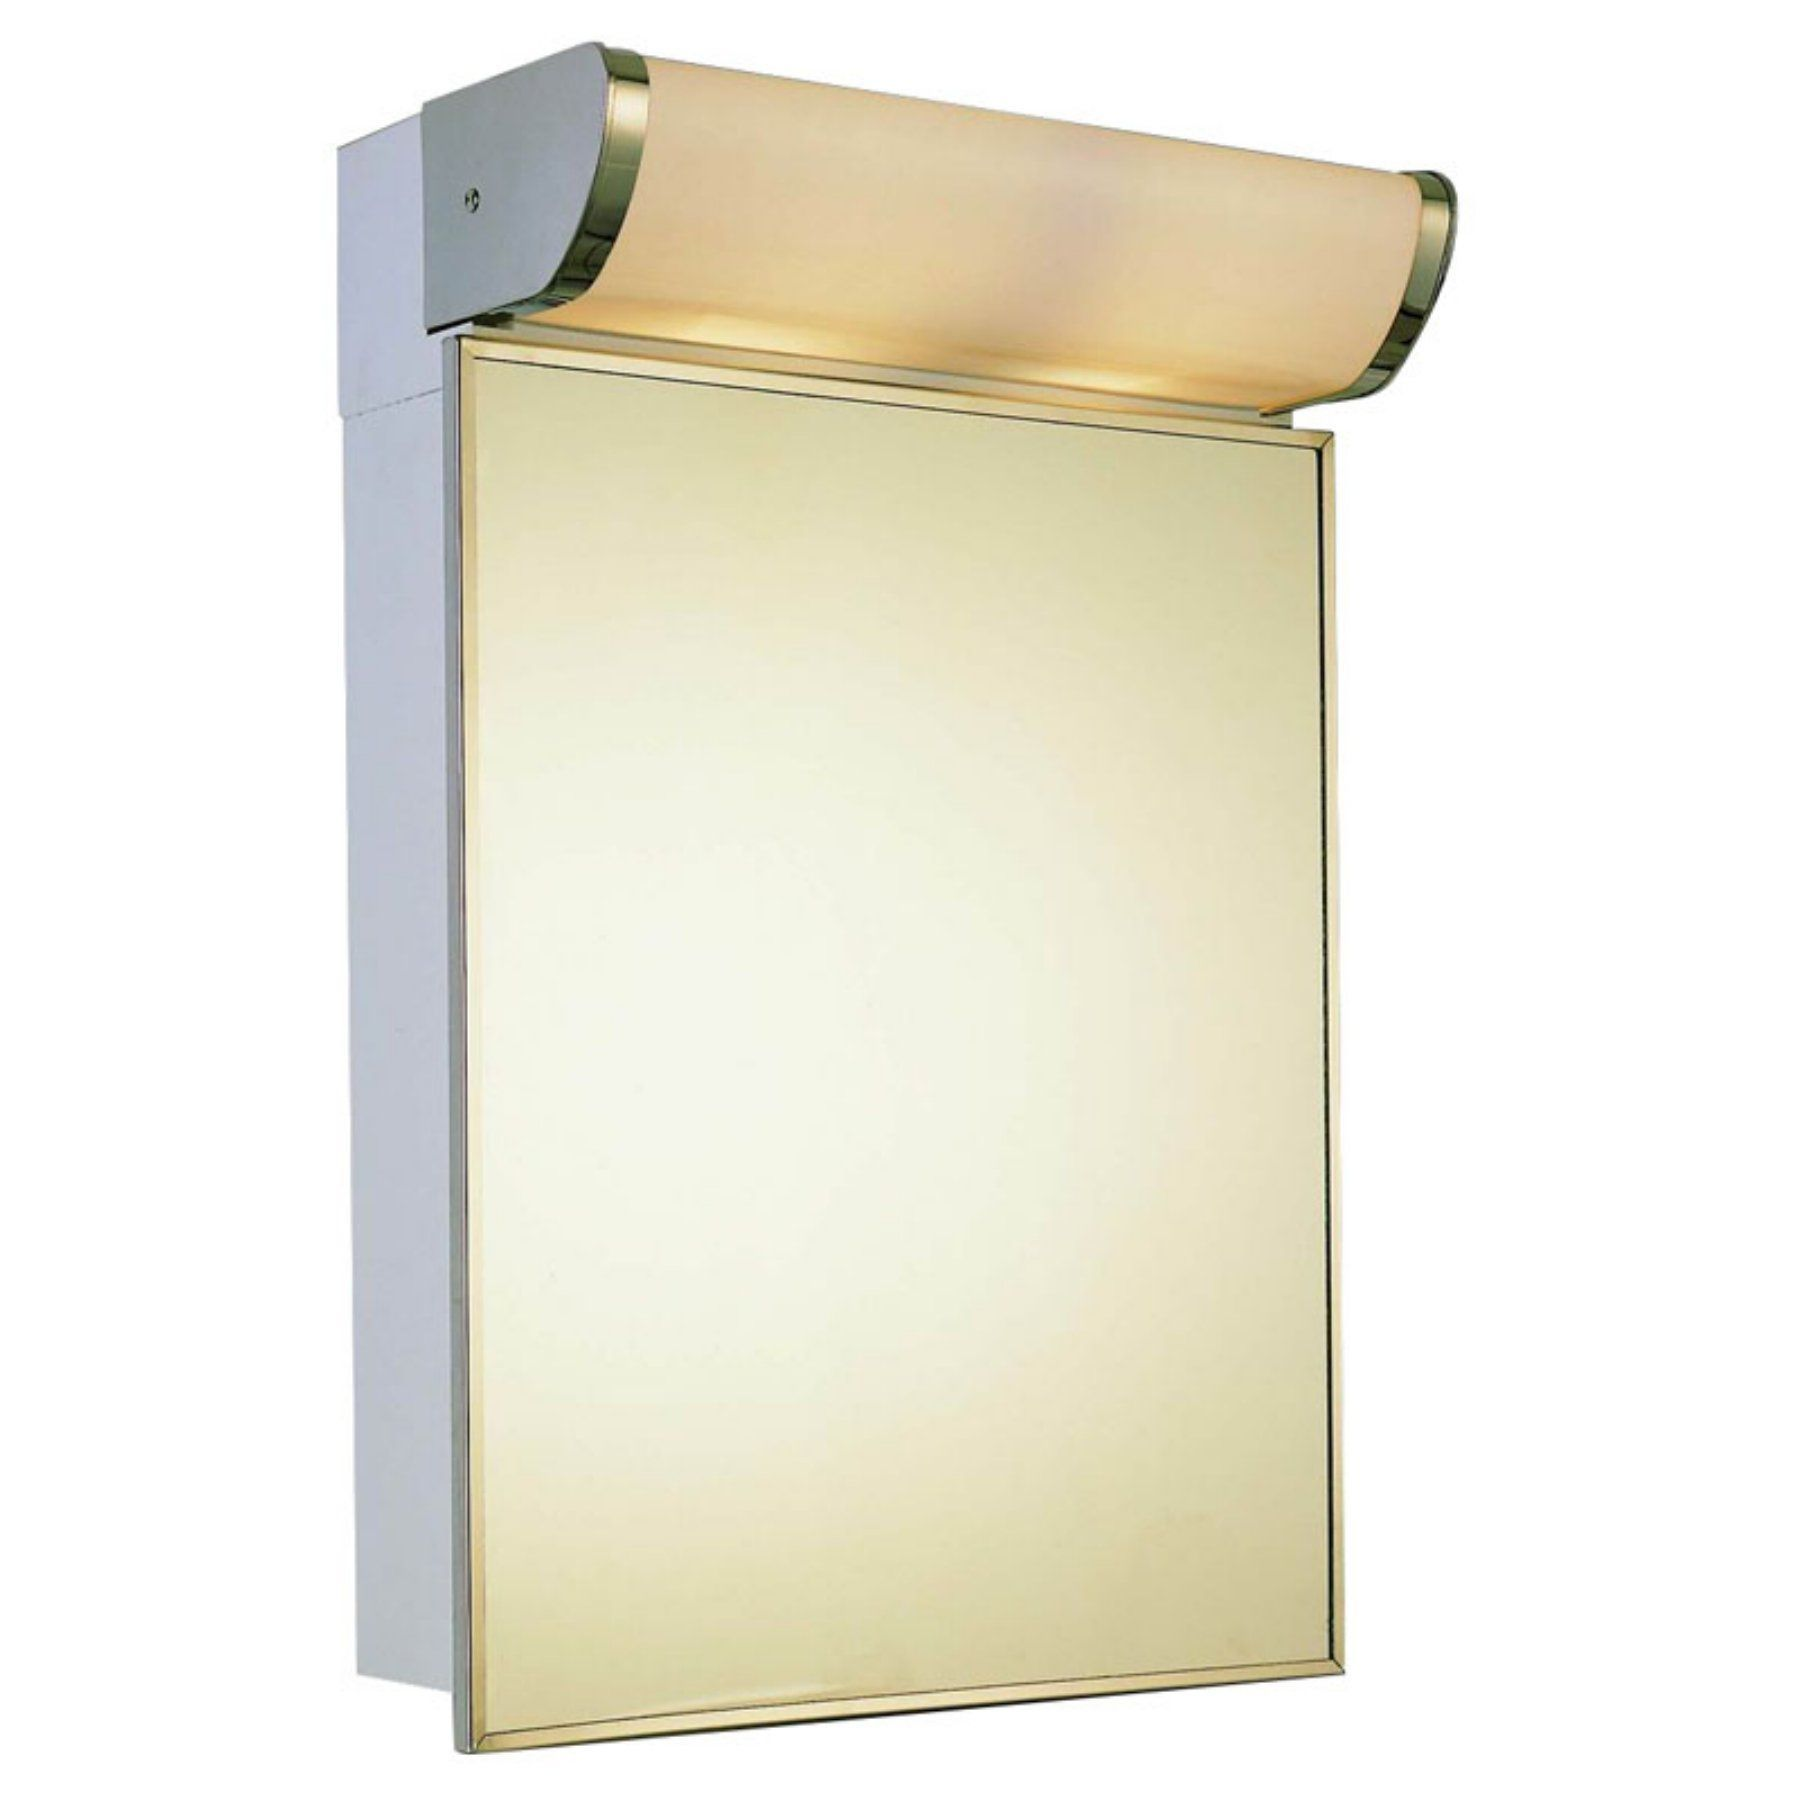 Ketcham 16w X 23 25h In Deluxe Surface Mount Medicine Cabinet